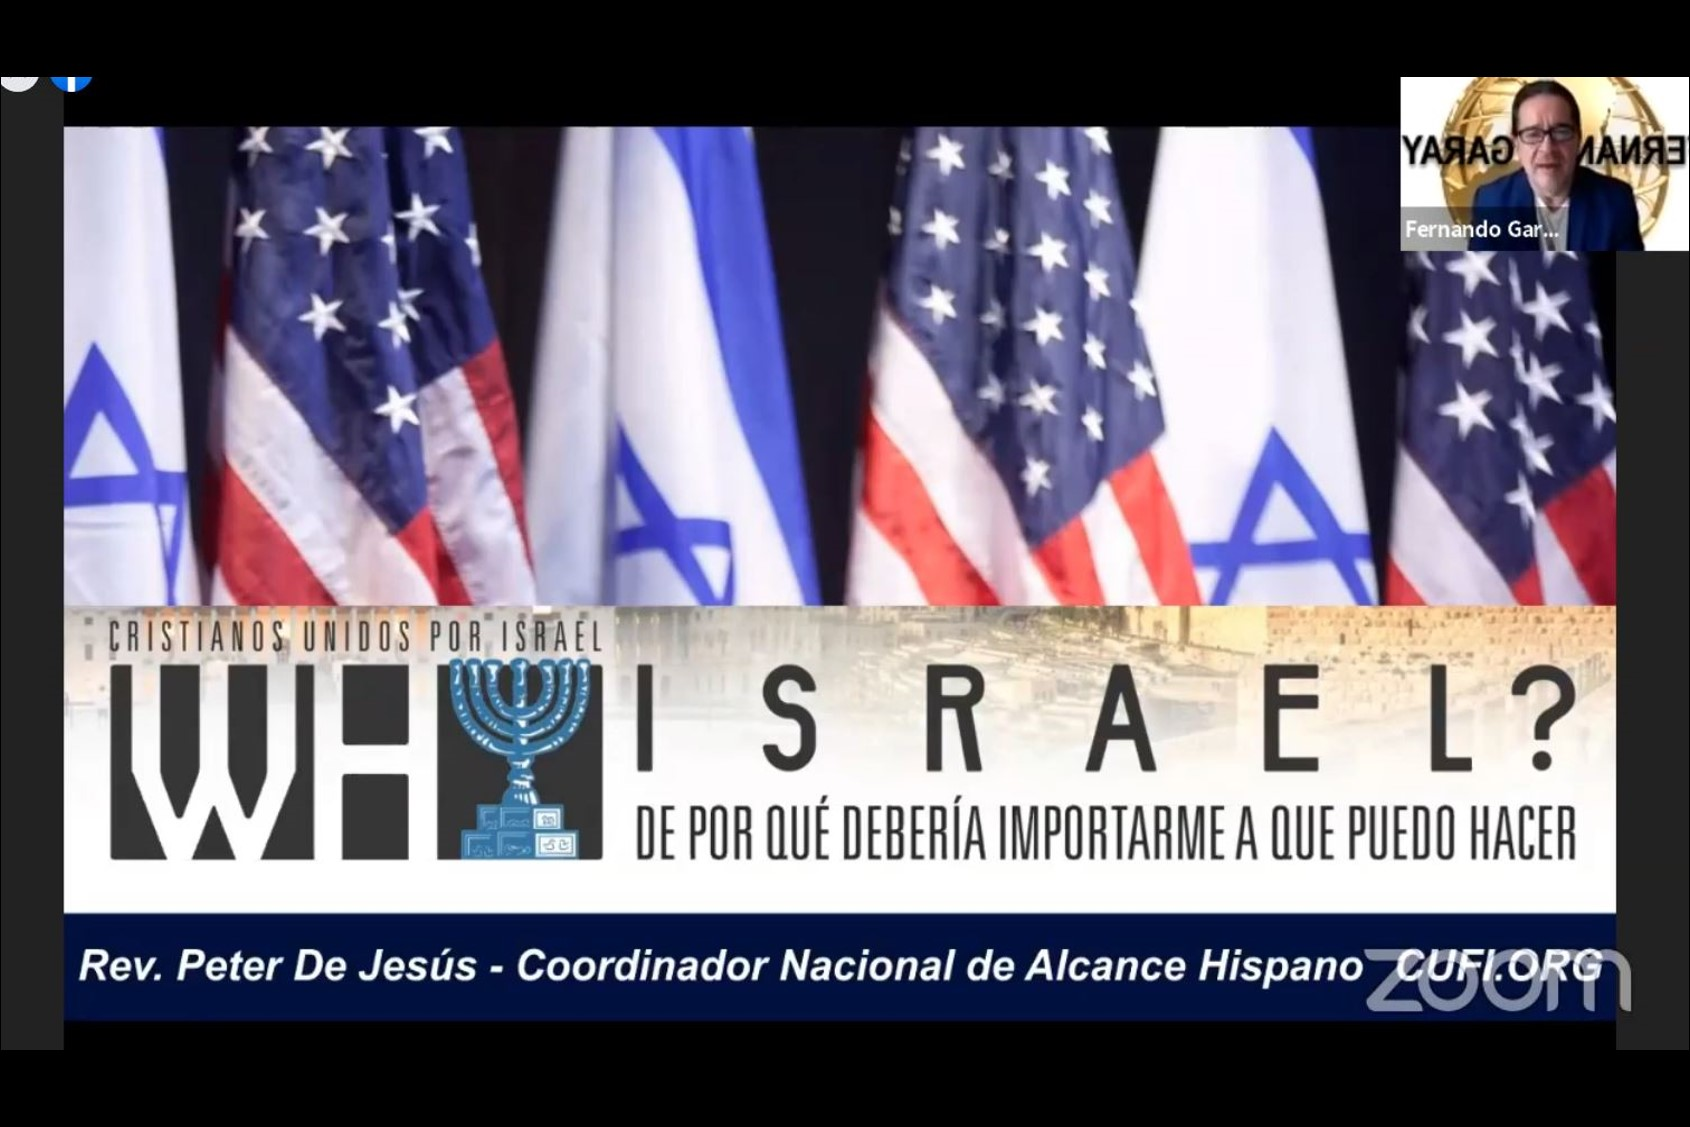 August 5 - Spanish Why Israel?